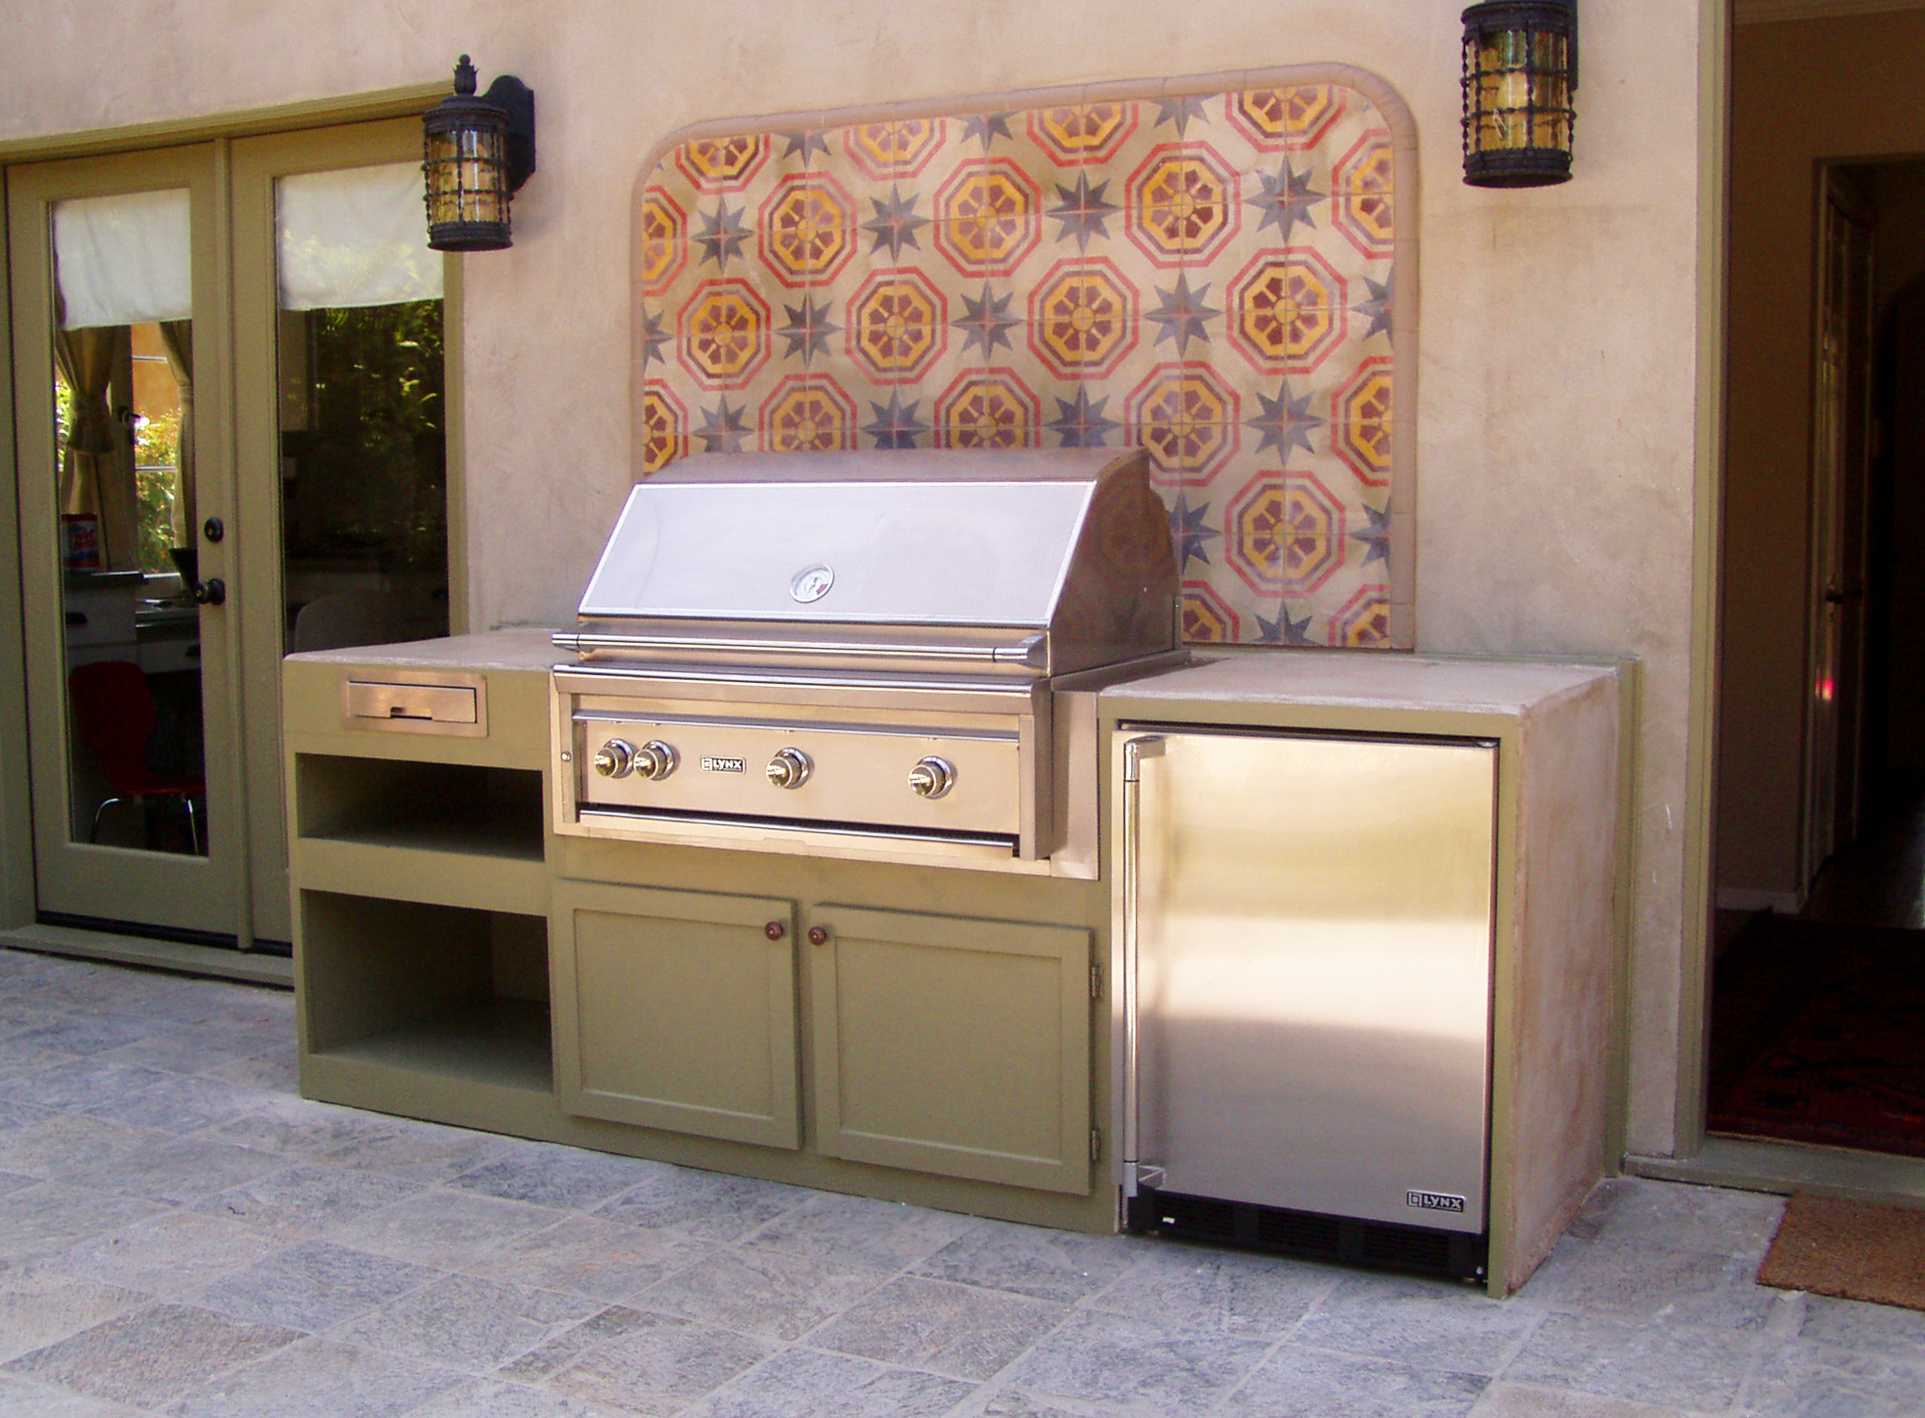 Custom Built-in BBQ